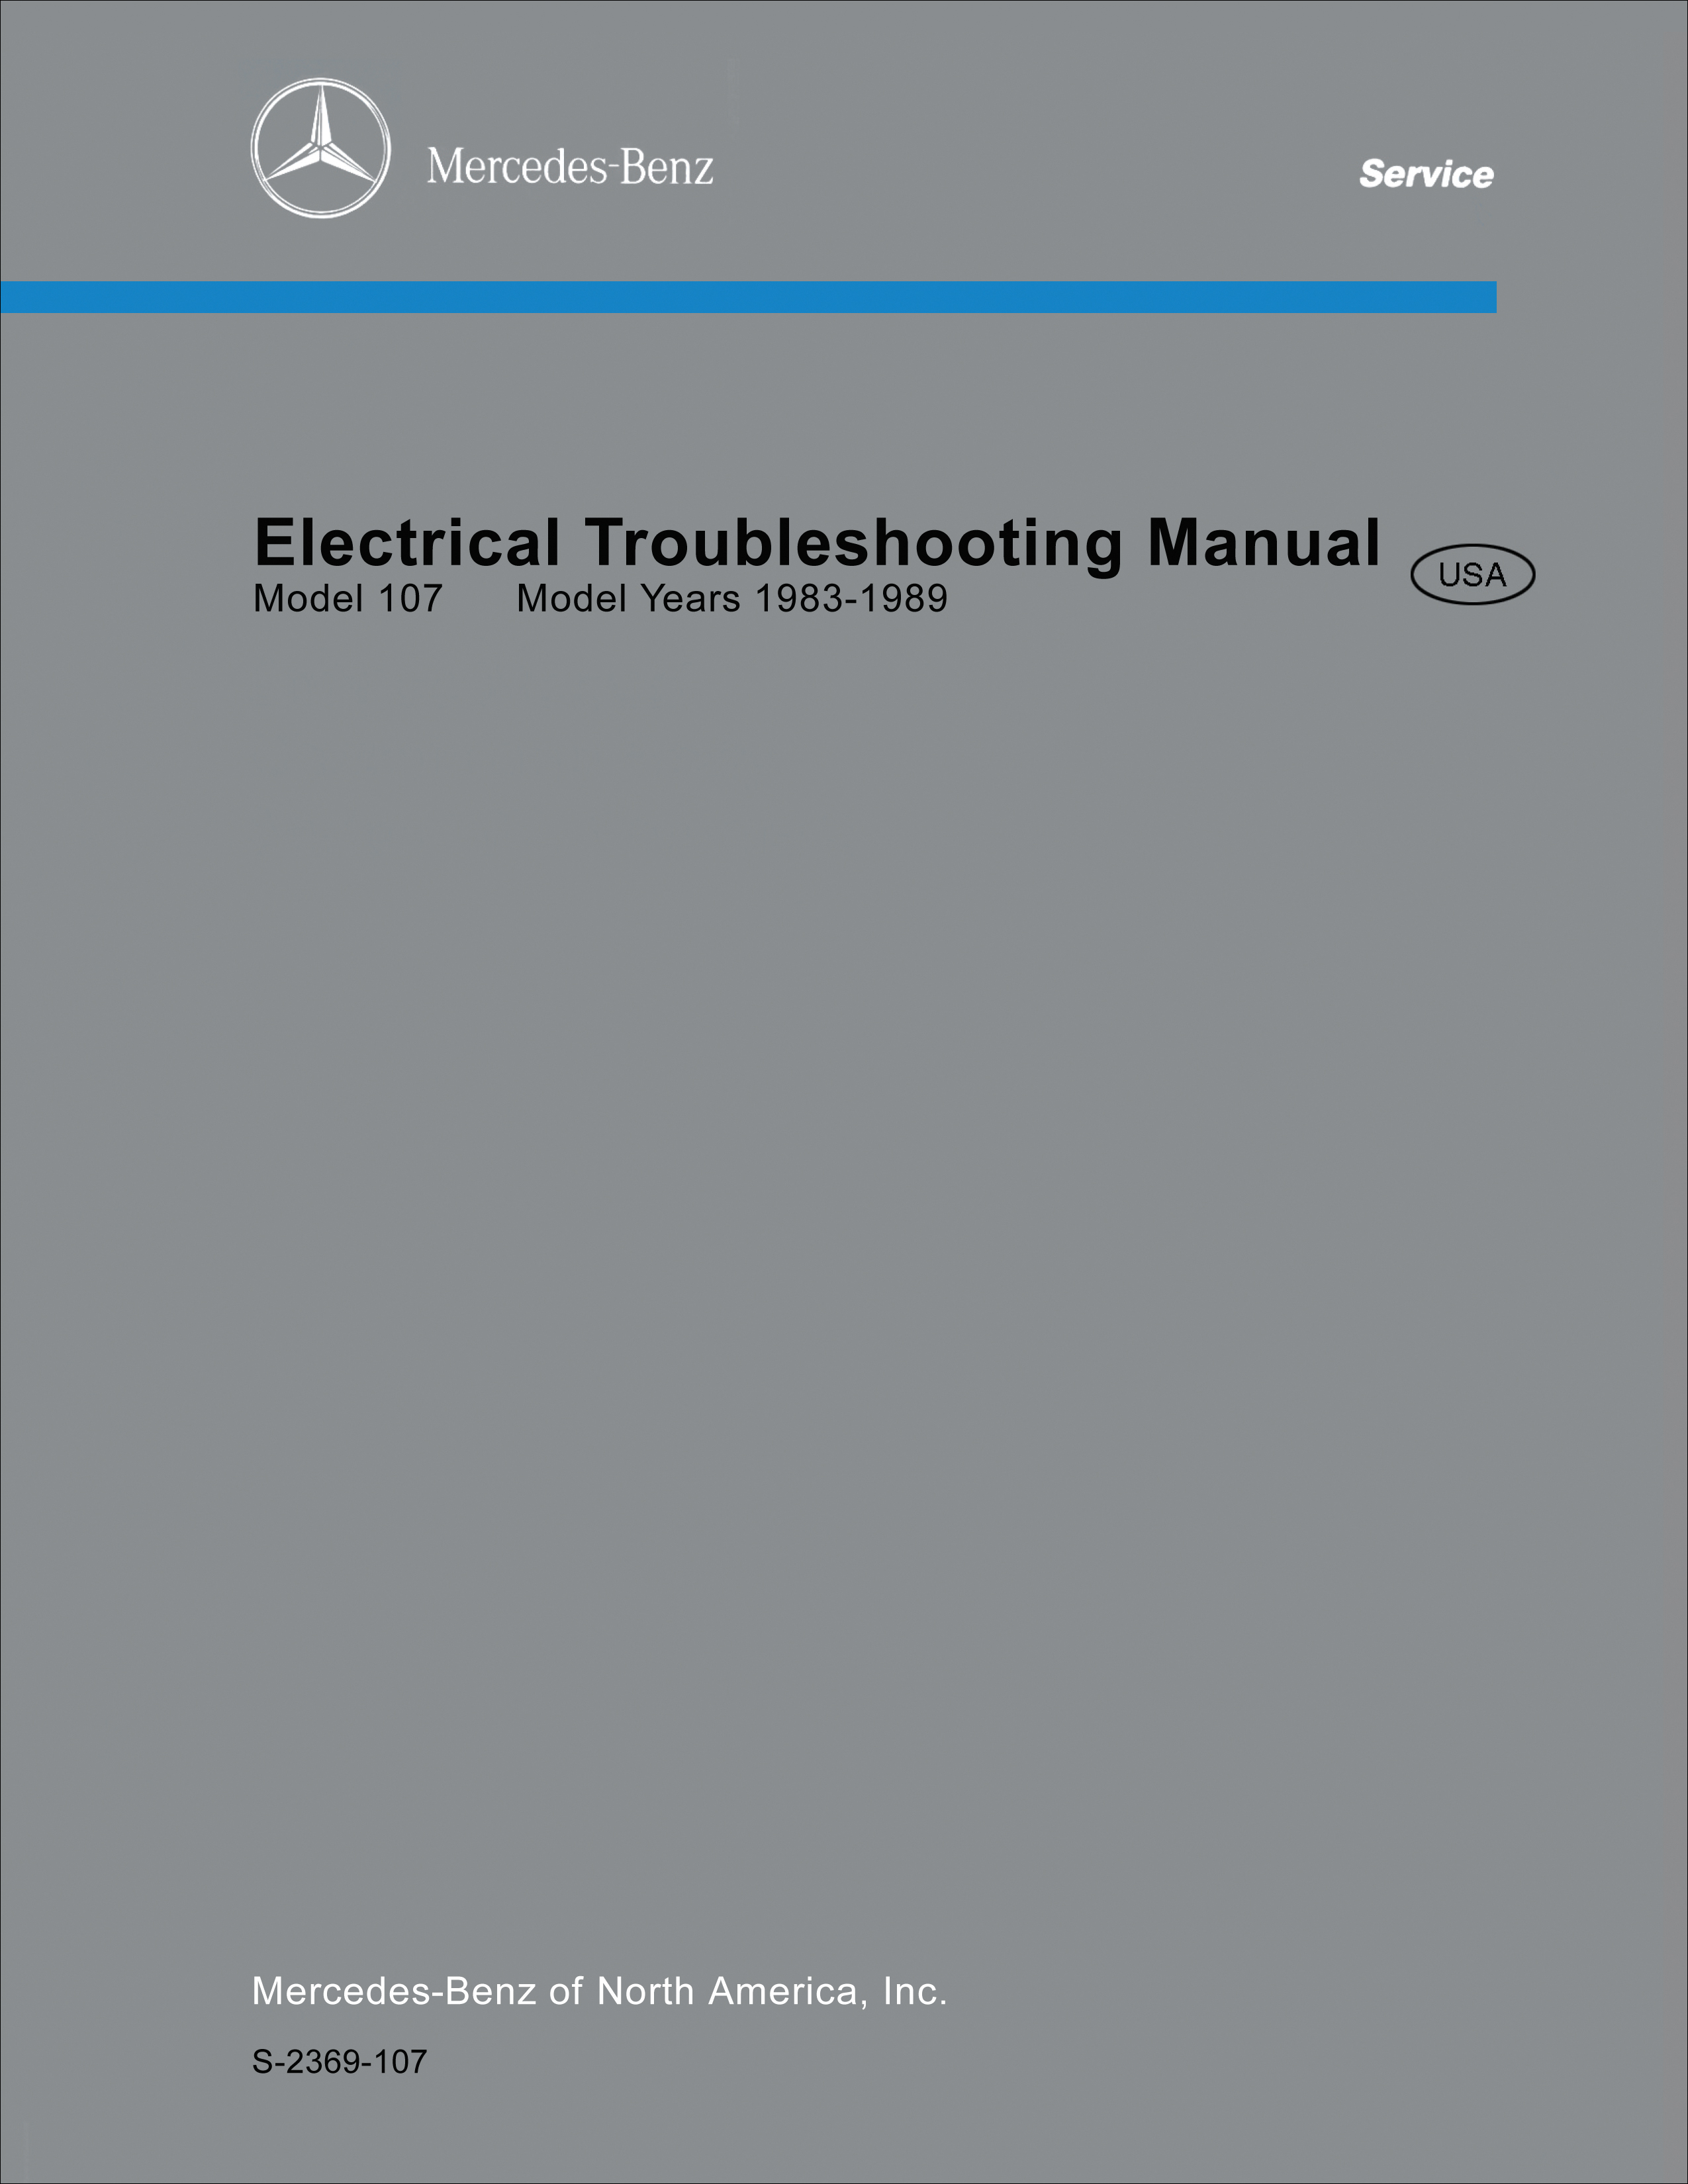 1986-1989 Mercedes 107 560SL  Electrical Troubleshooting Manual